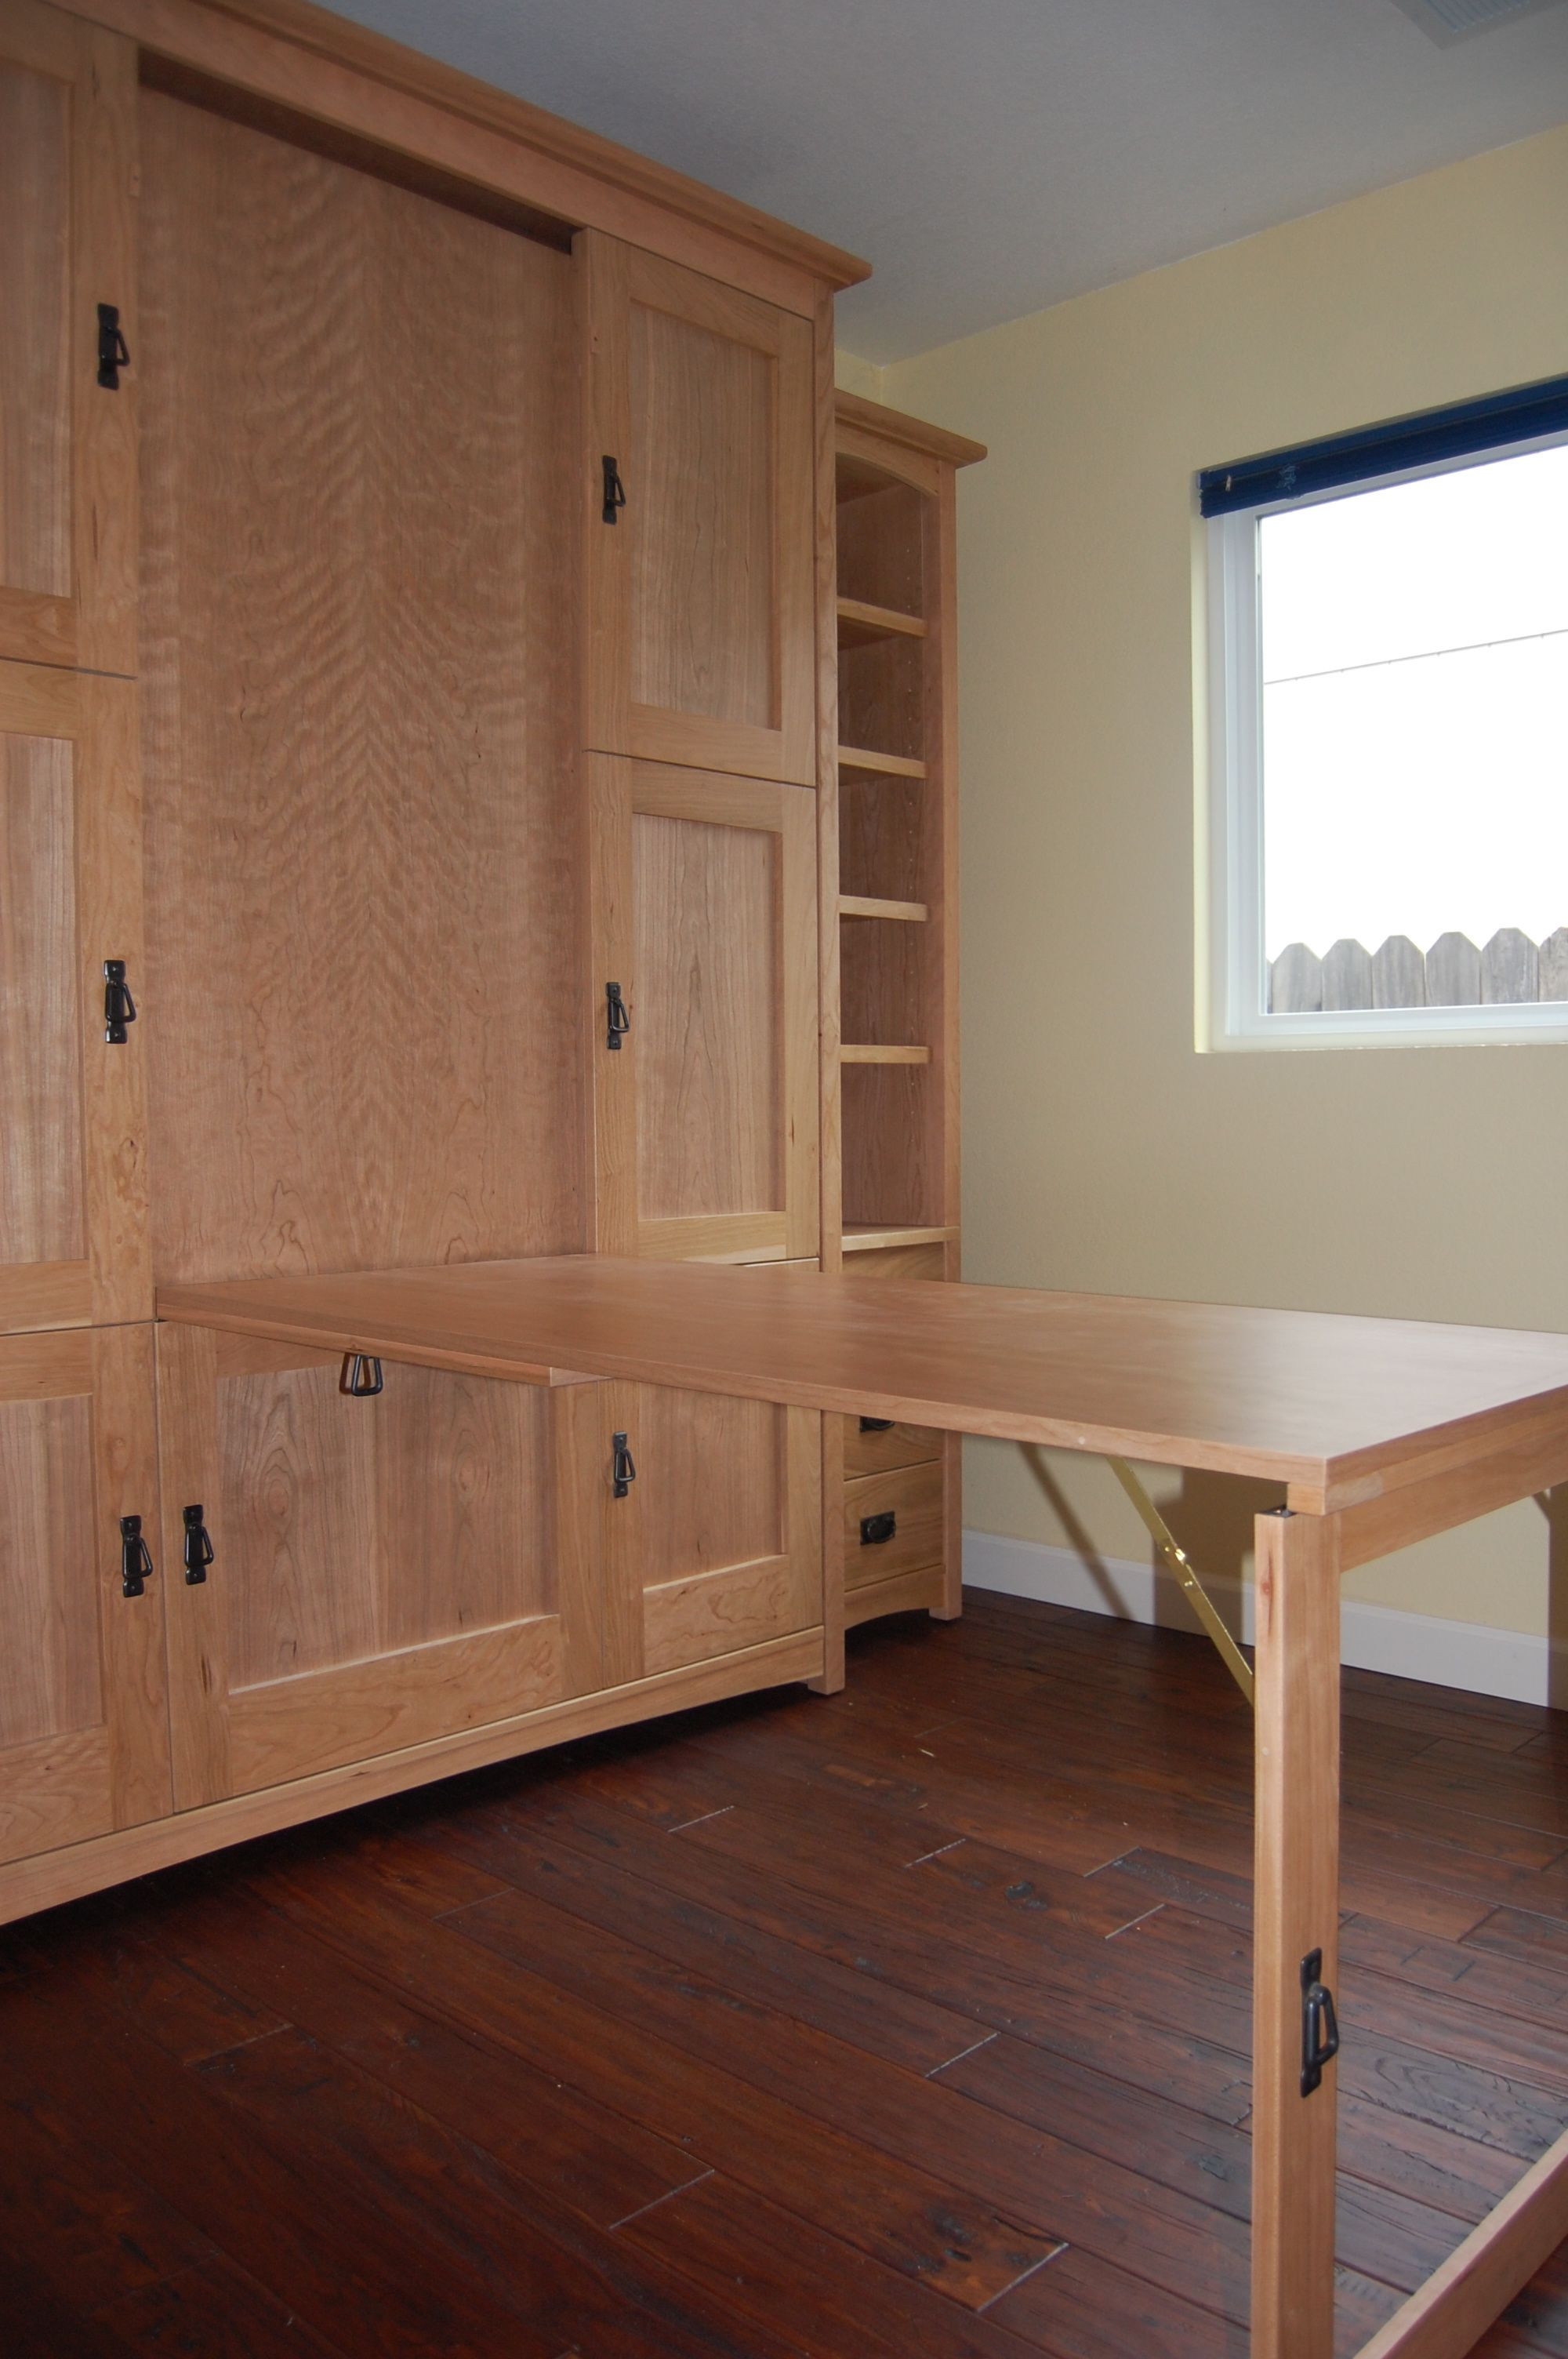 murphy kitchen table Wallbed murphy bed with hidden fold down table or desk Perfect for